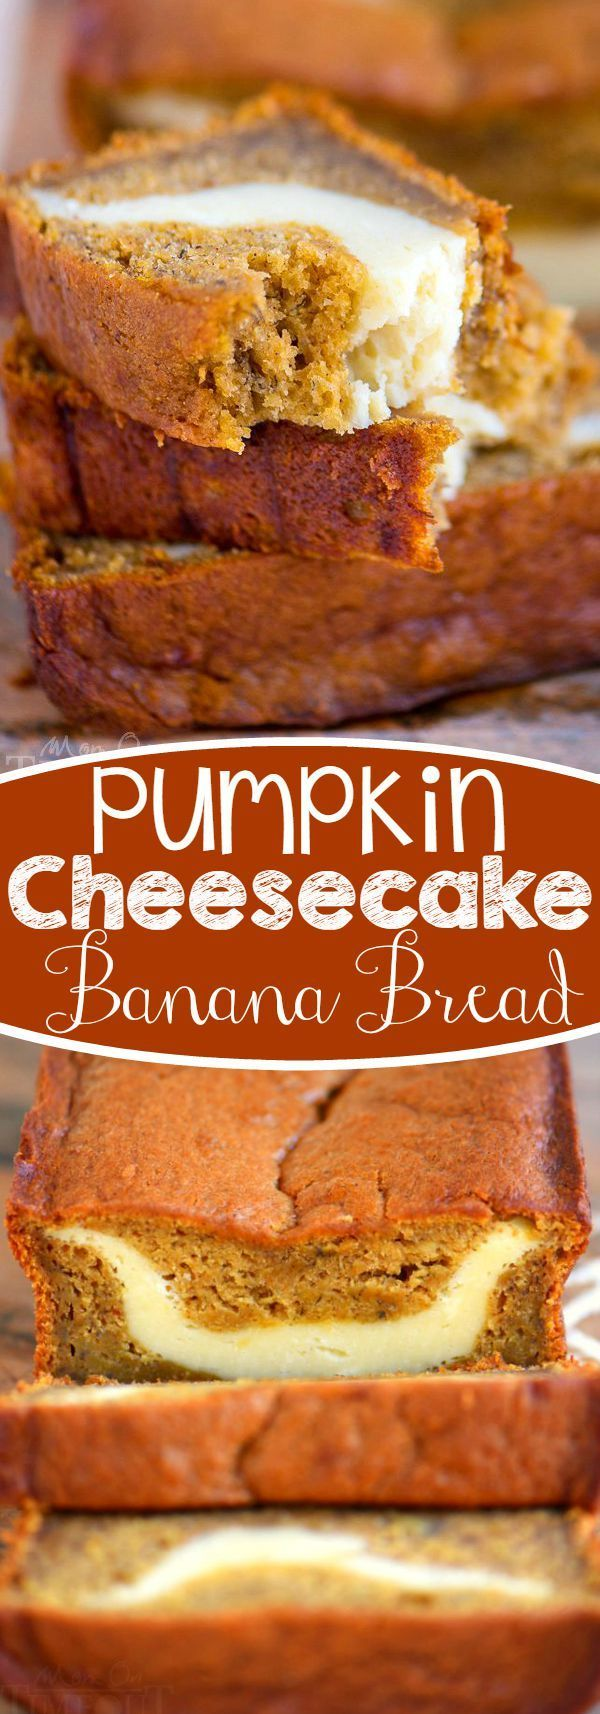 This Pumpkin Cheesecake Banana Bread is perfect for dessert but also doubles as an amazing breakfast...or snack...or lunch. It's pretty amazing no matter what time you eat it! Ultra moist and bursting with pumpkin flavor!